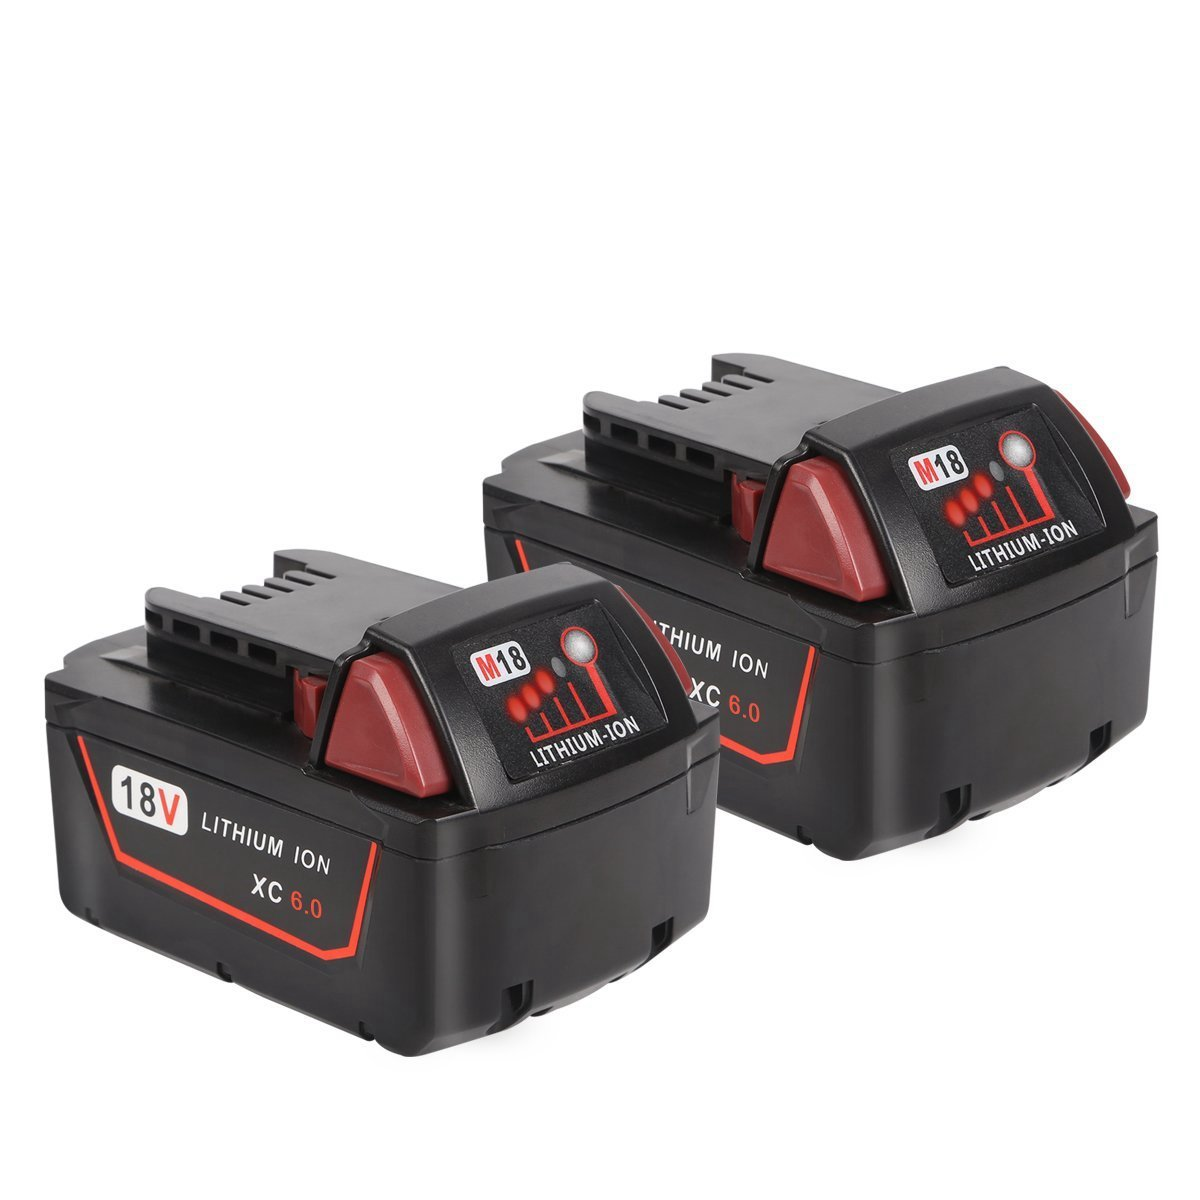 Enegitech 18V 6.0Ah Lithium-ion Battery Replacement for Milwaukee M18 XC Red Lithium M18B 48-11-1860 48-11-1850 48-11-1820 48-11-1828 48-11-1815 Cordless Power Tools